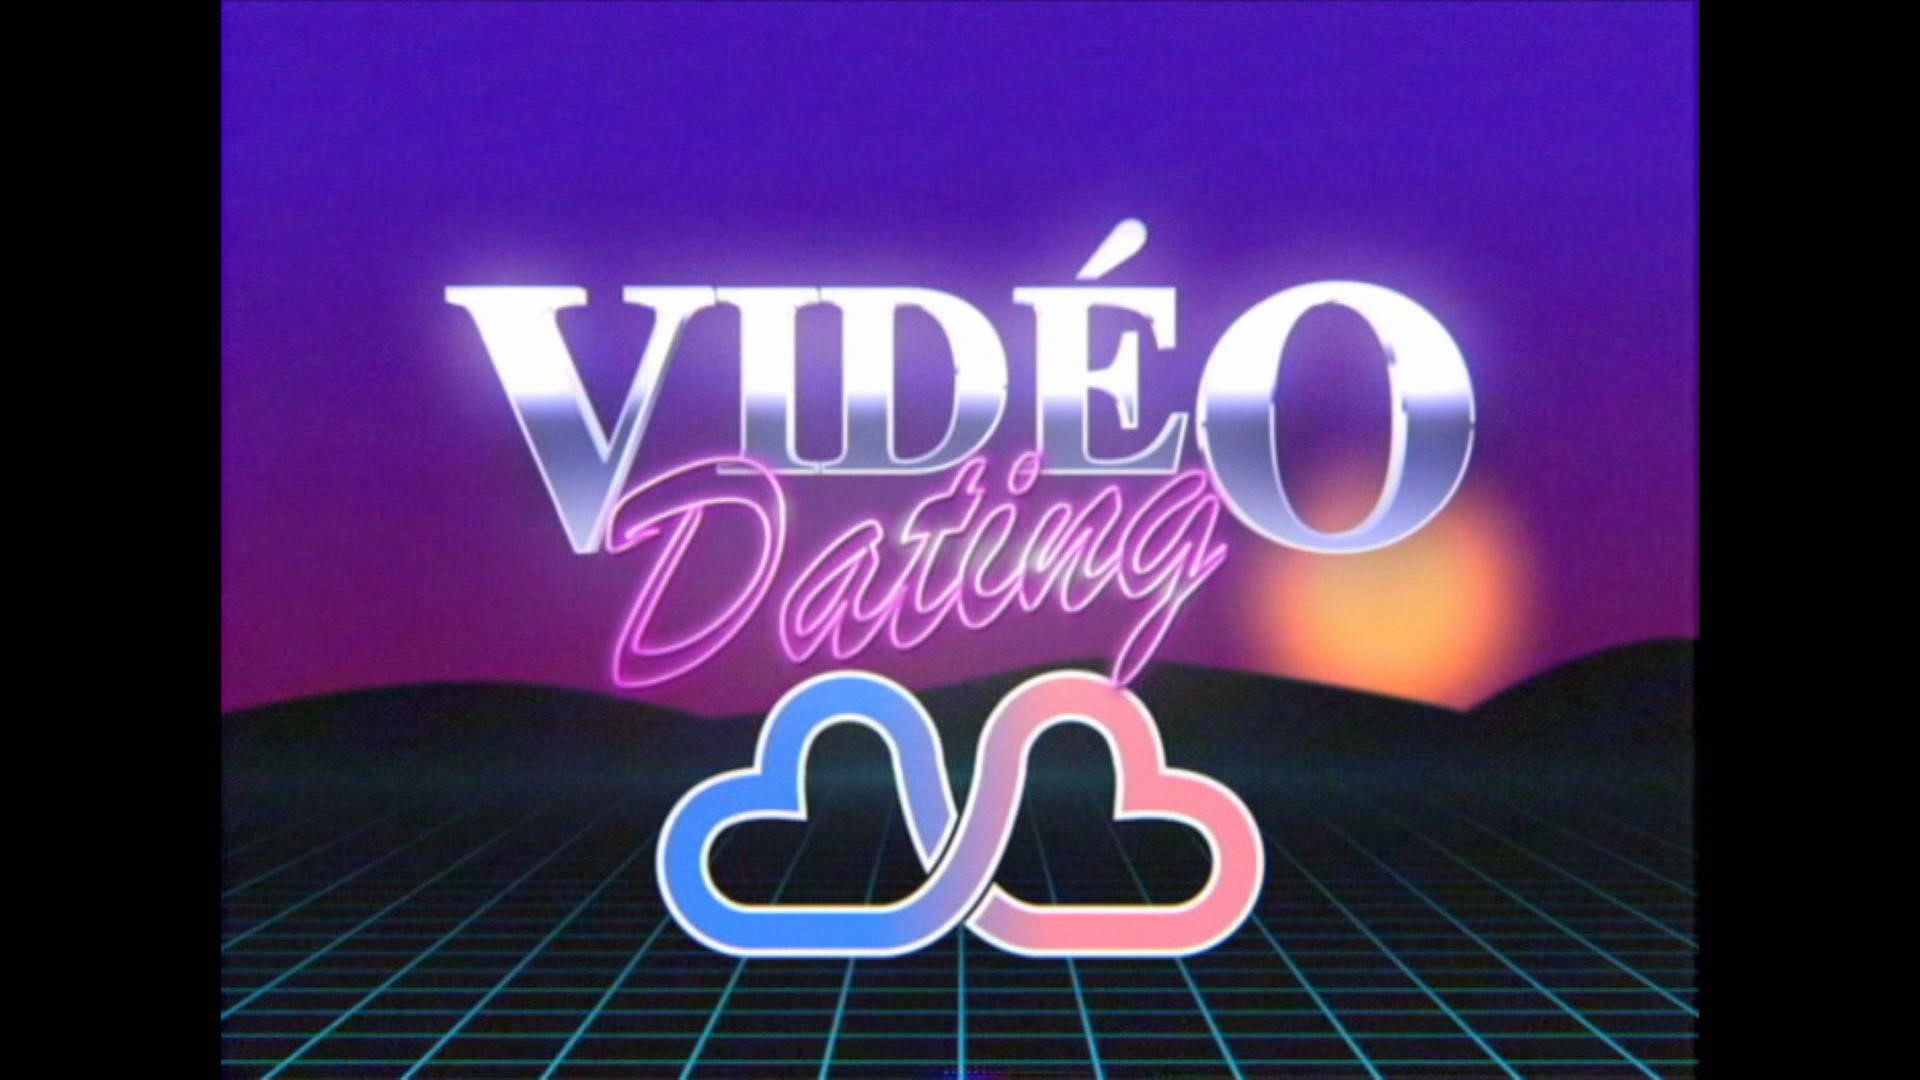 Dating videos from the 80s